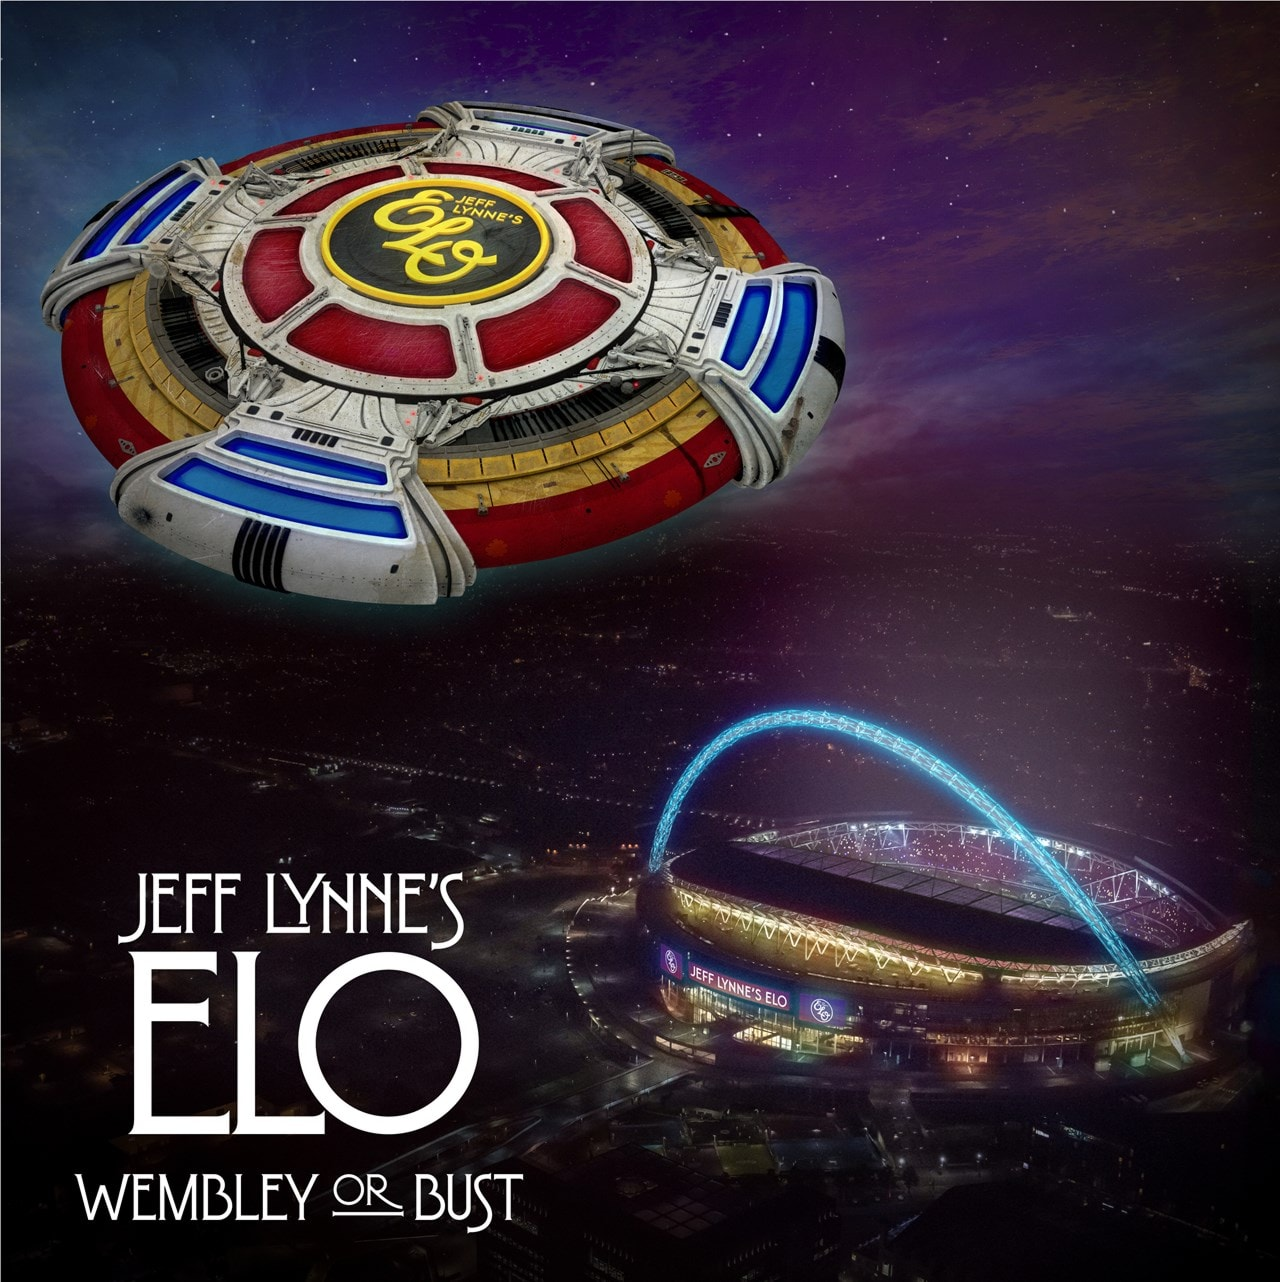 Wembley Or Bust - 1